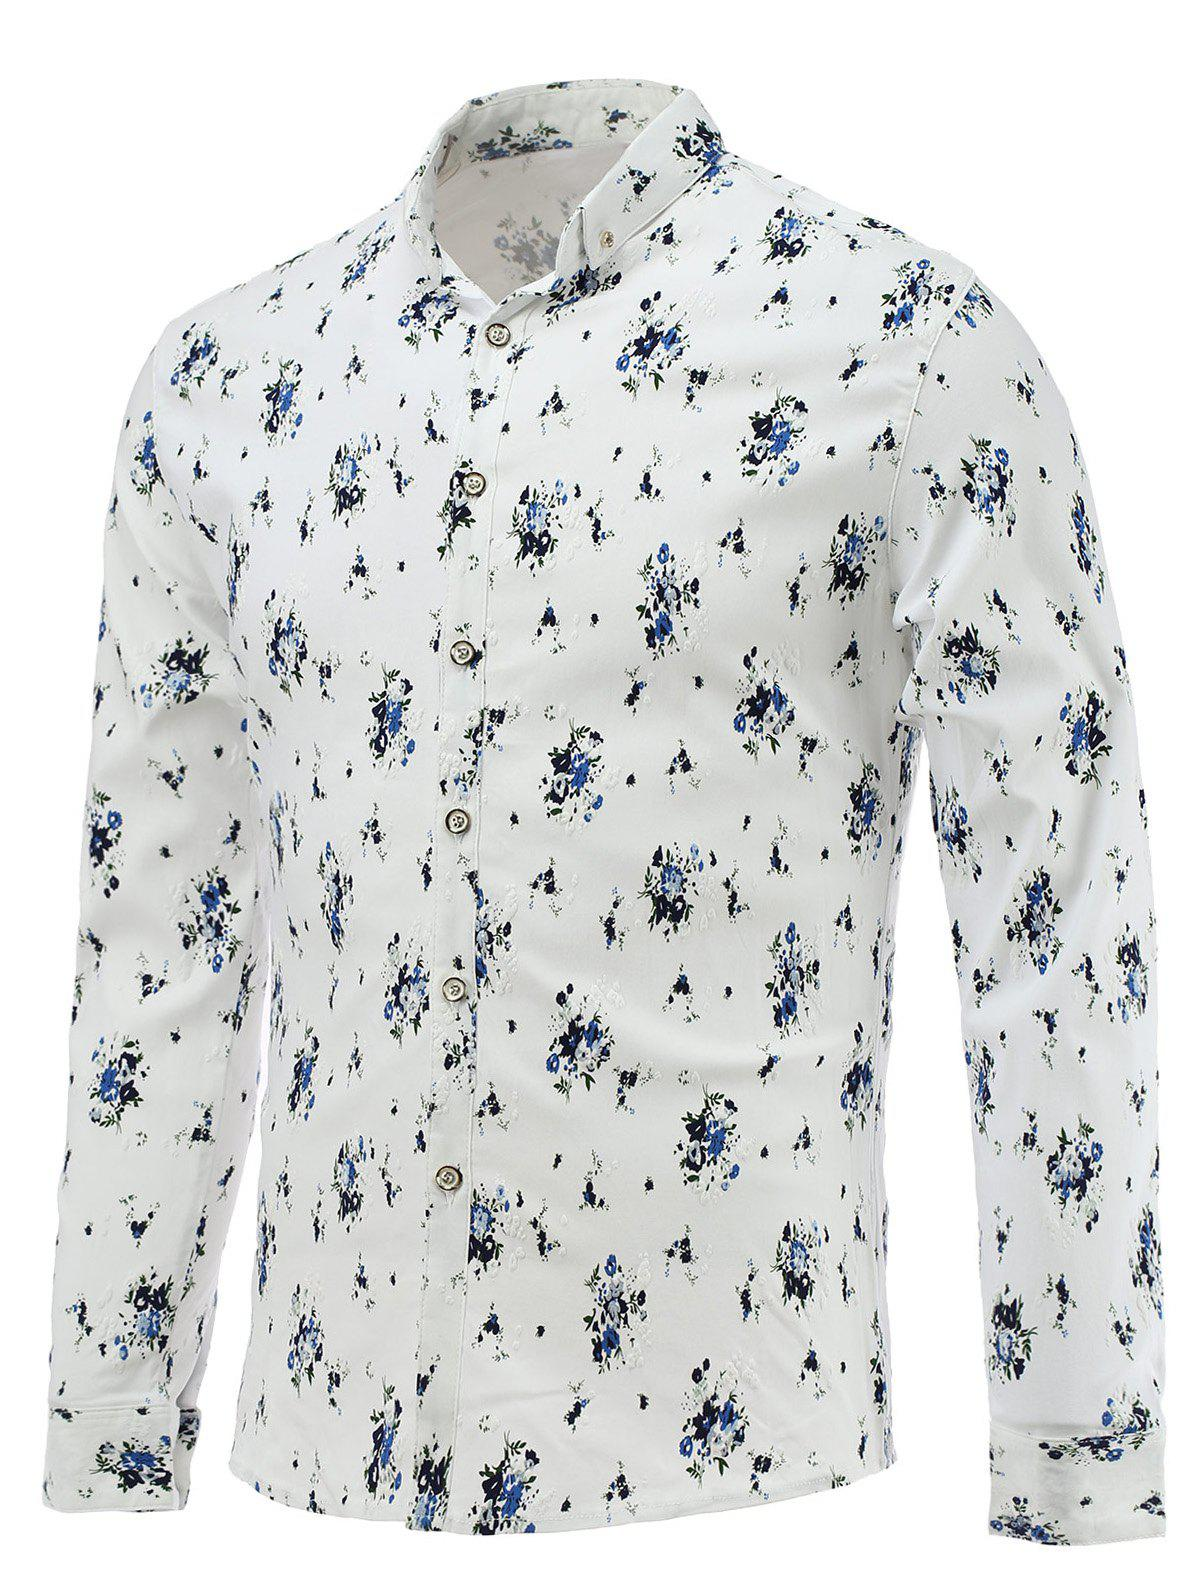 Turn-Down Collar Long Sleeve Tiny Floral Printed Shirt - 3XL BLUE